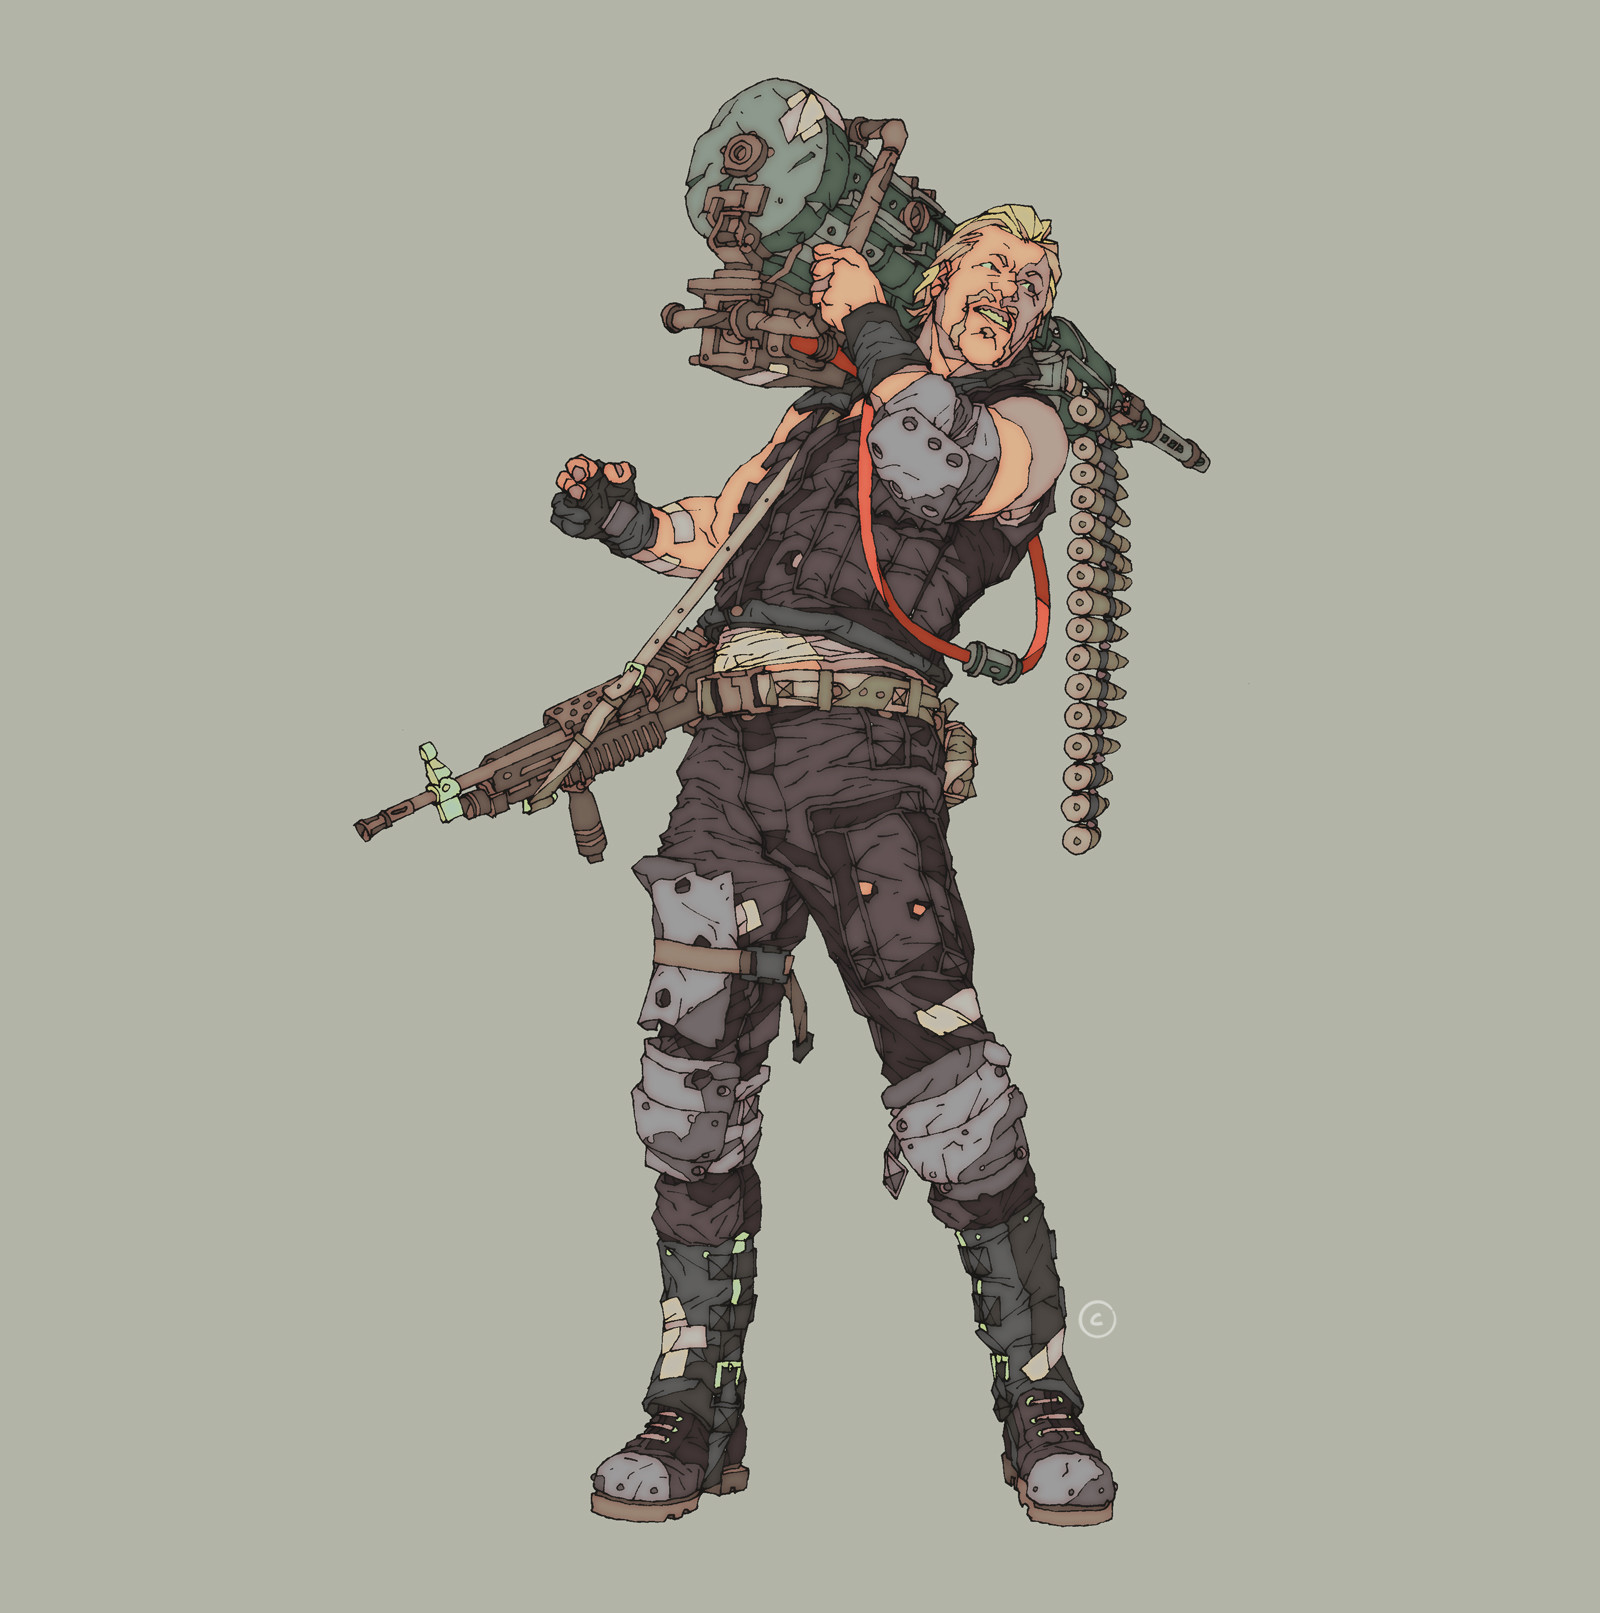 Fallout 4 Character Design Tips : Artstation post apocalyptic character designs calum